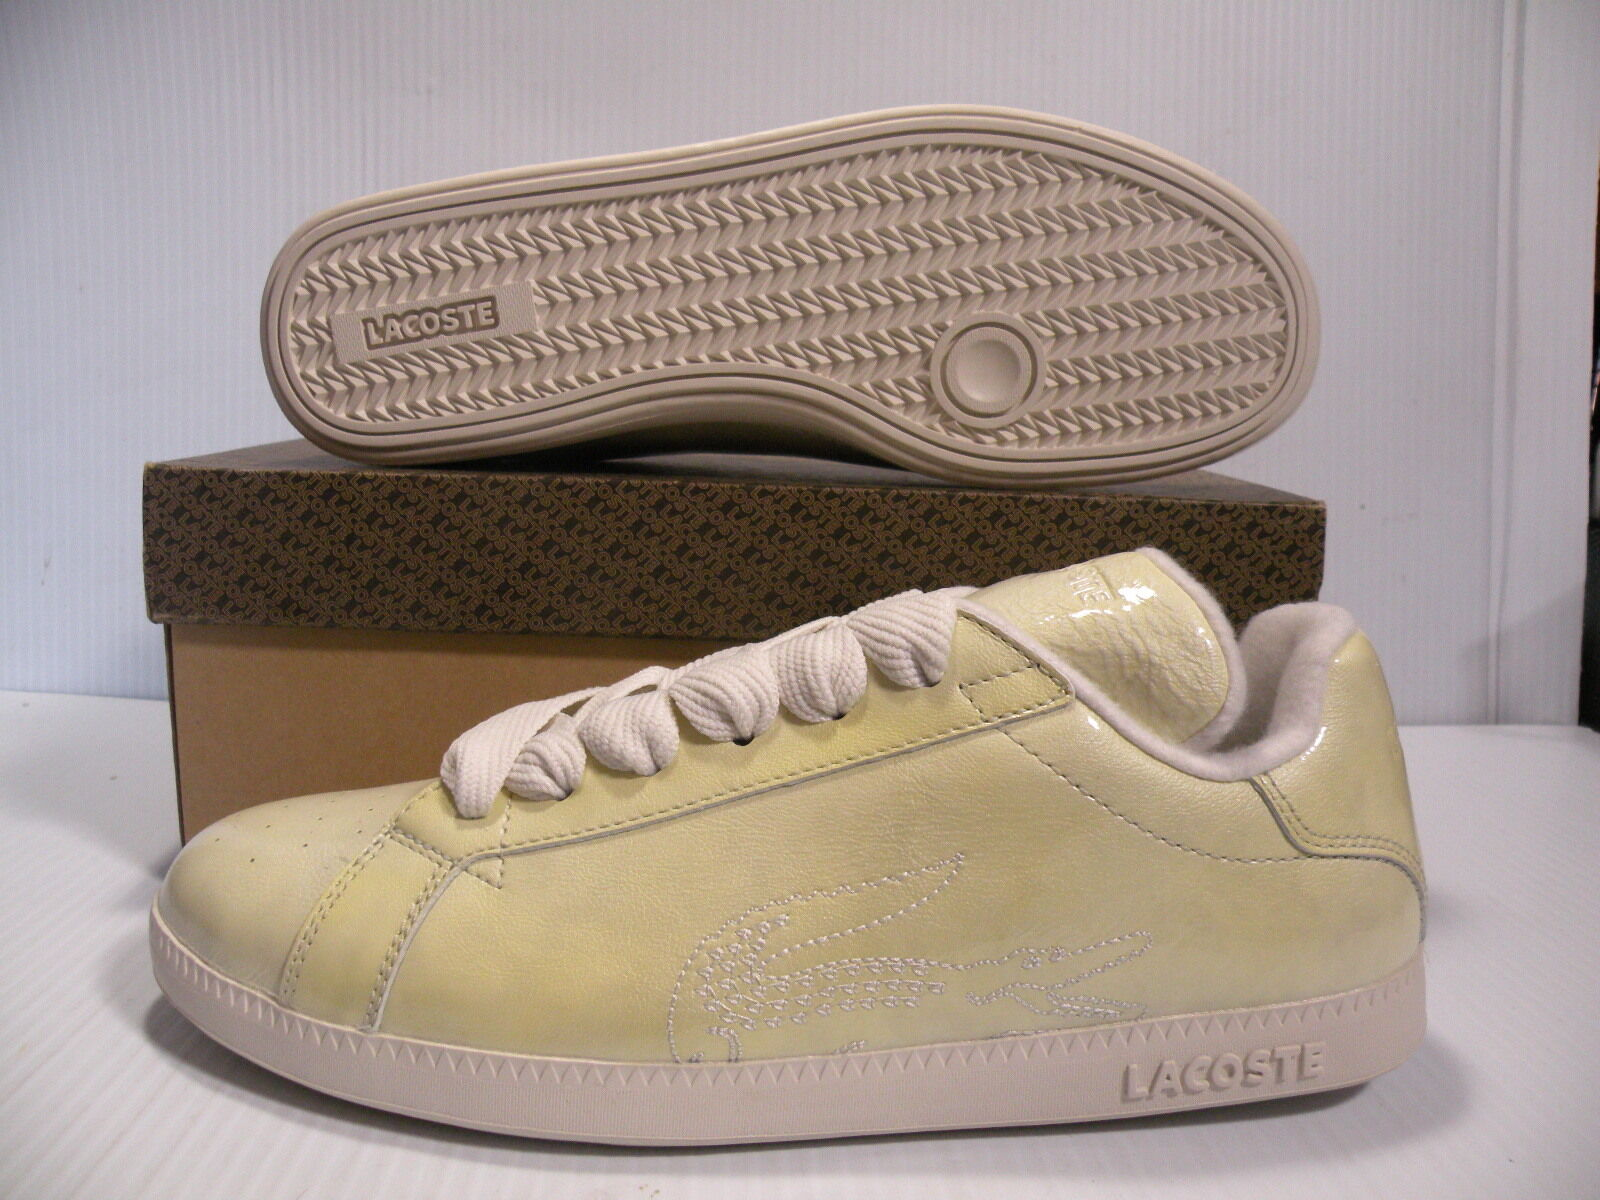 LACOSTE GRADUATE NEW FUNK SPORT femmes chaussures jaune 14STW7981-L42 Taille 8 NEW